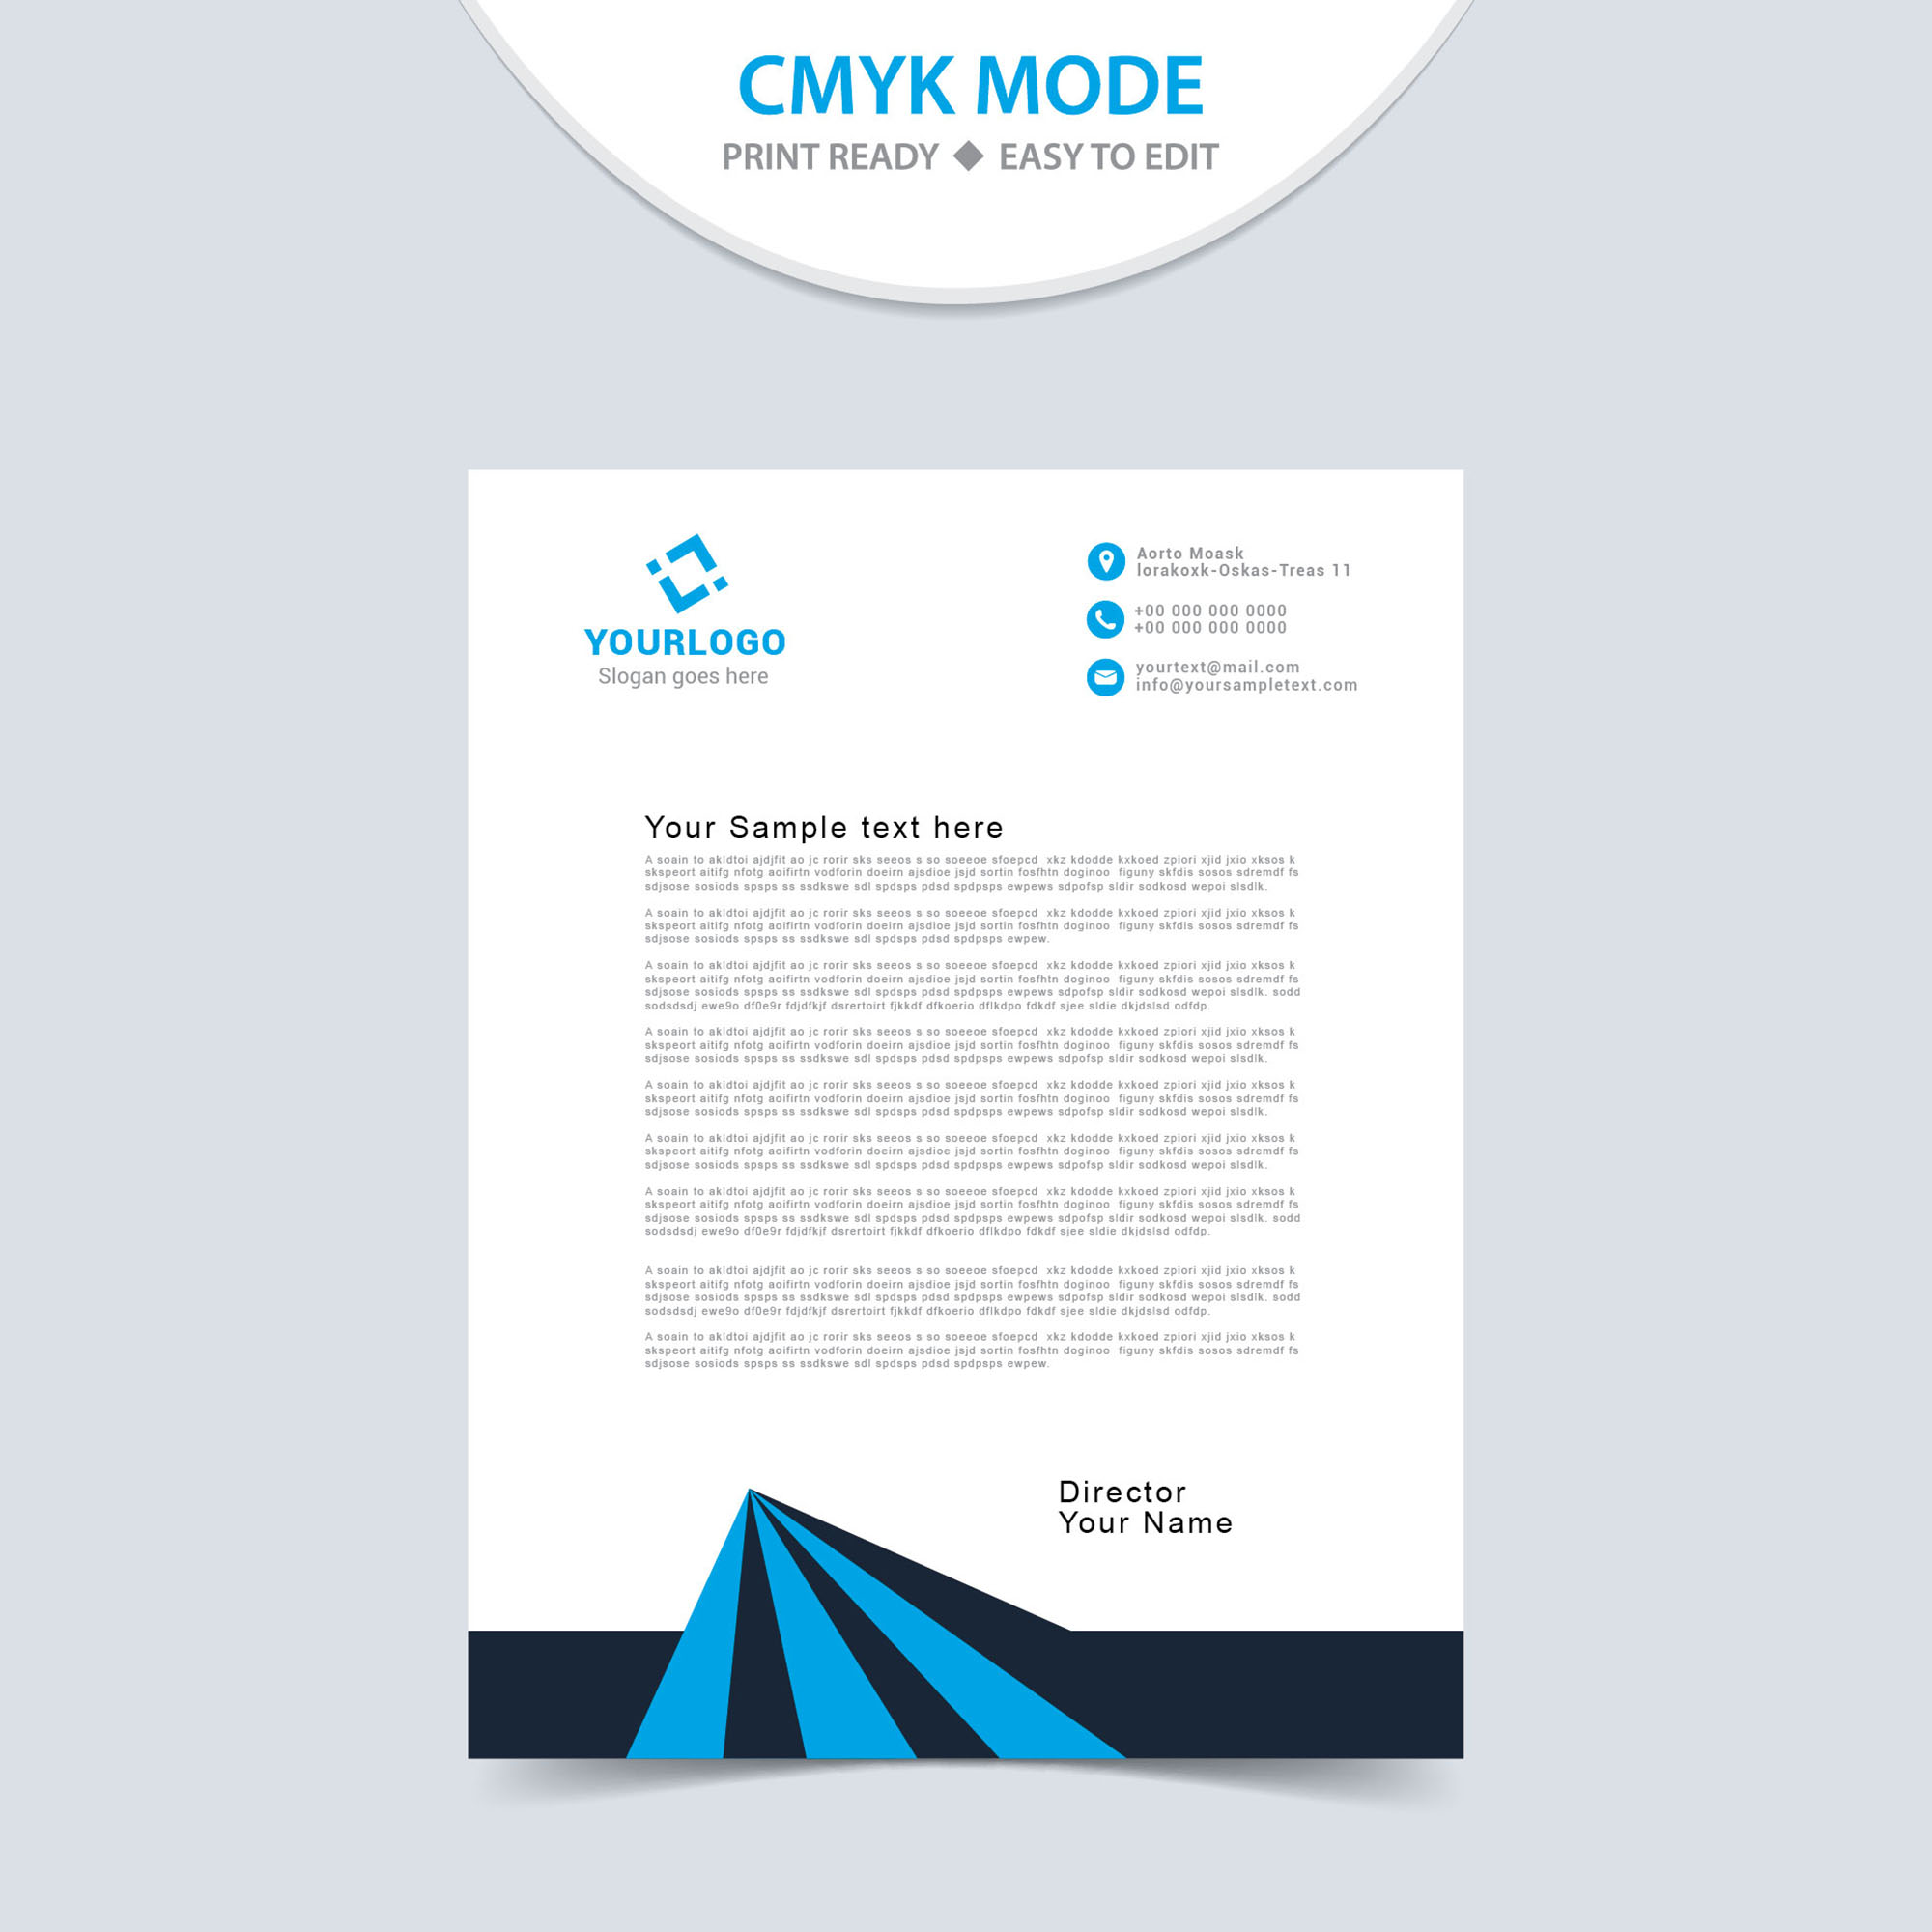 Letterheads, Letterhead Design, Letterhead Template, Print Template,  Vector, Abstract, Business  Company Letterhead Samples Free Download